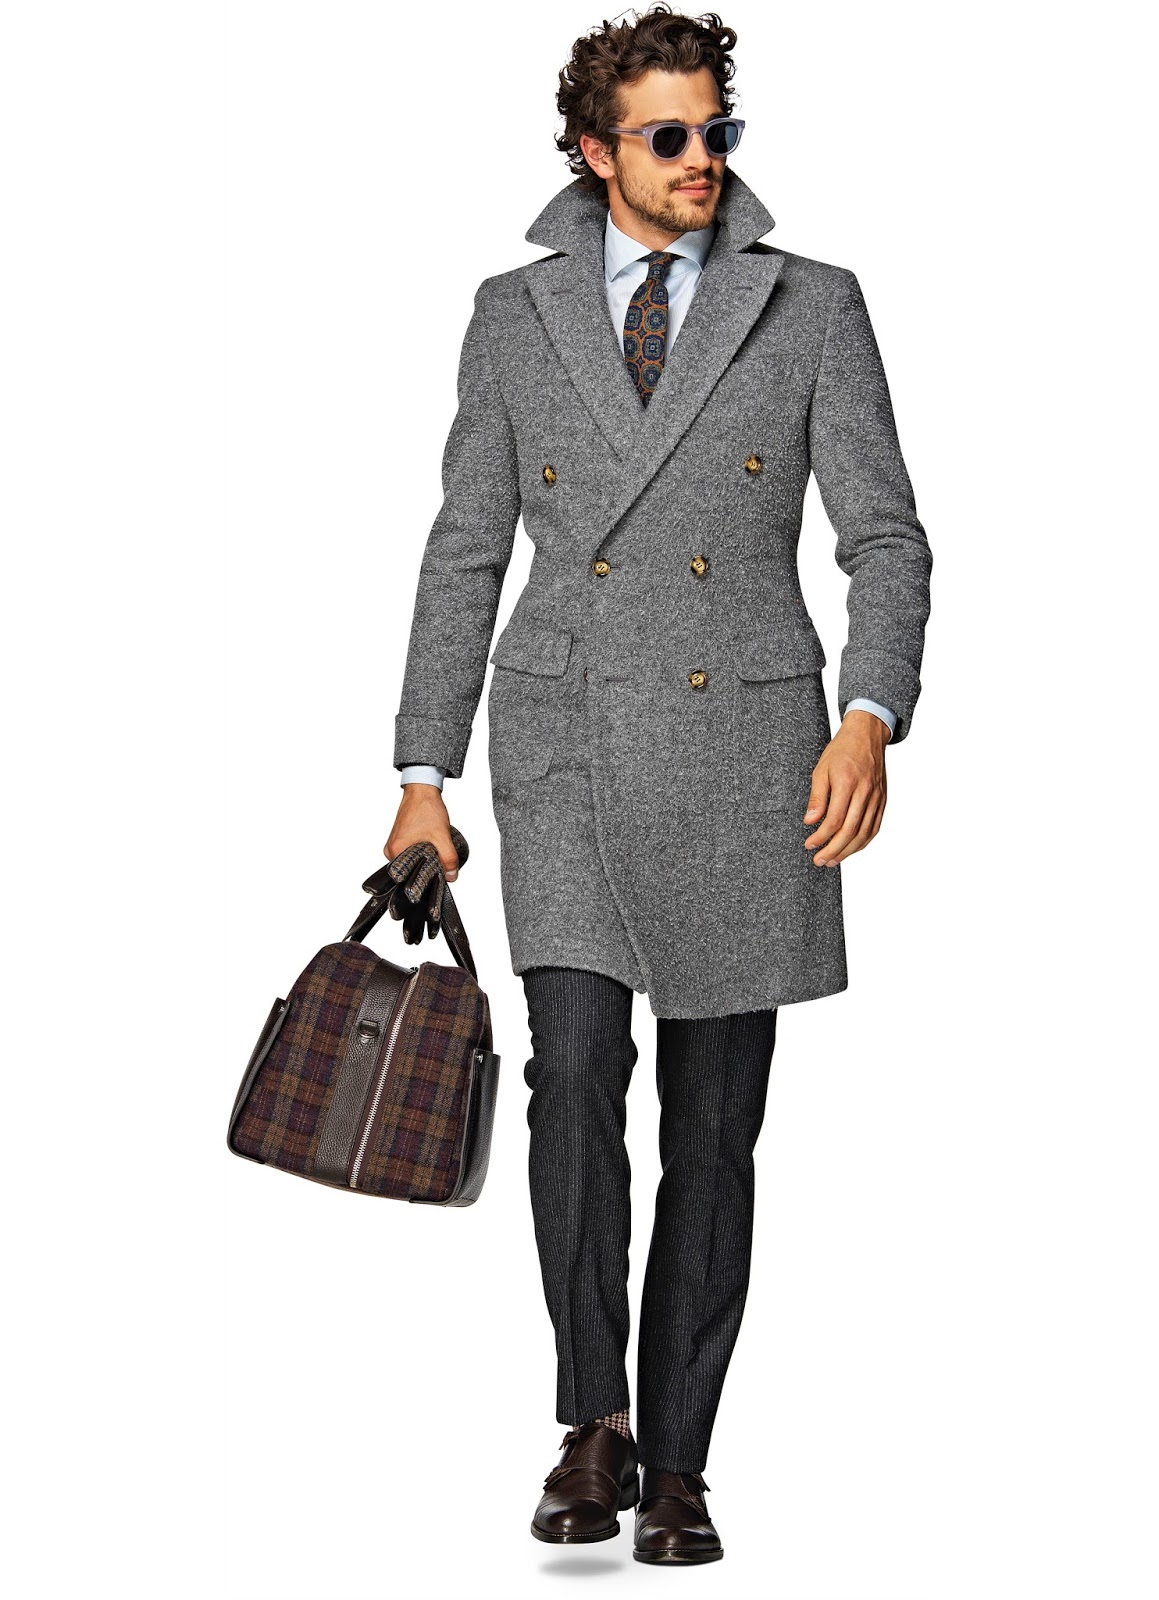 Hallelujah: Suitsupply Outlet is Back